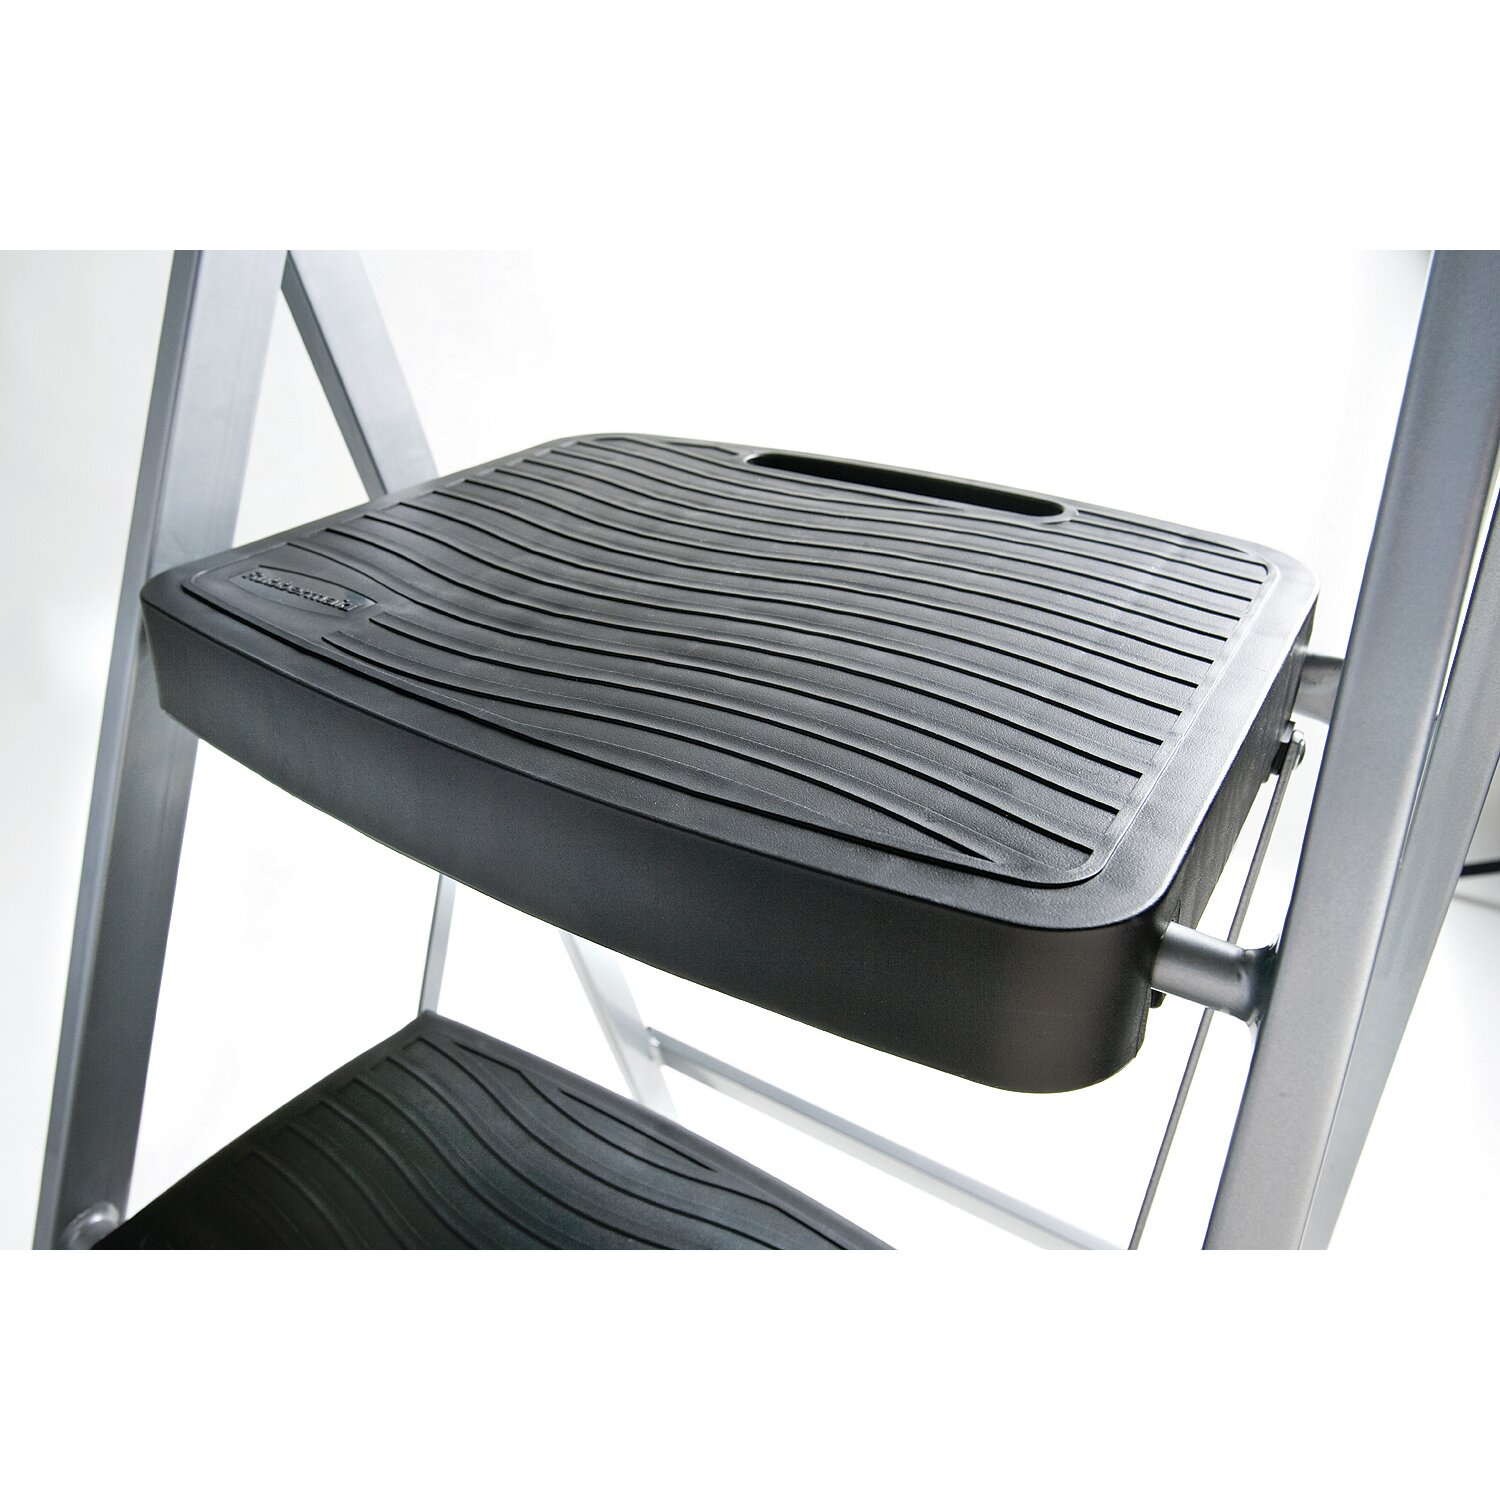 Rubbermaid 2 Step Steel Folding Step Stool With 200 Lb